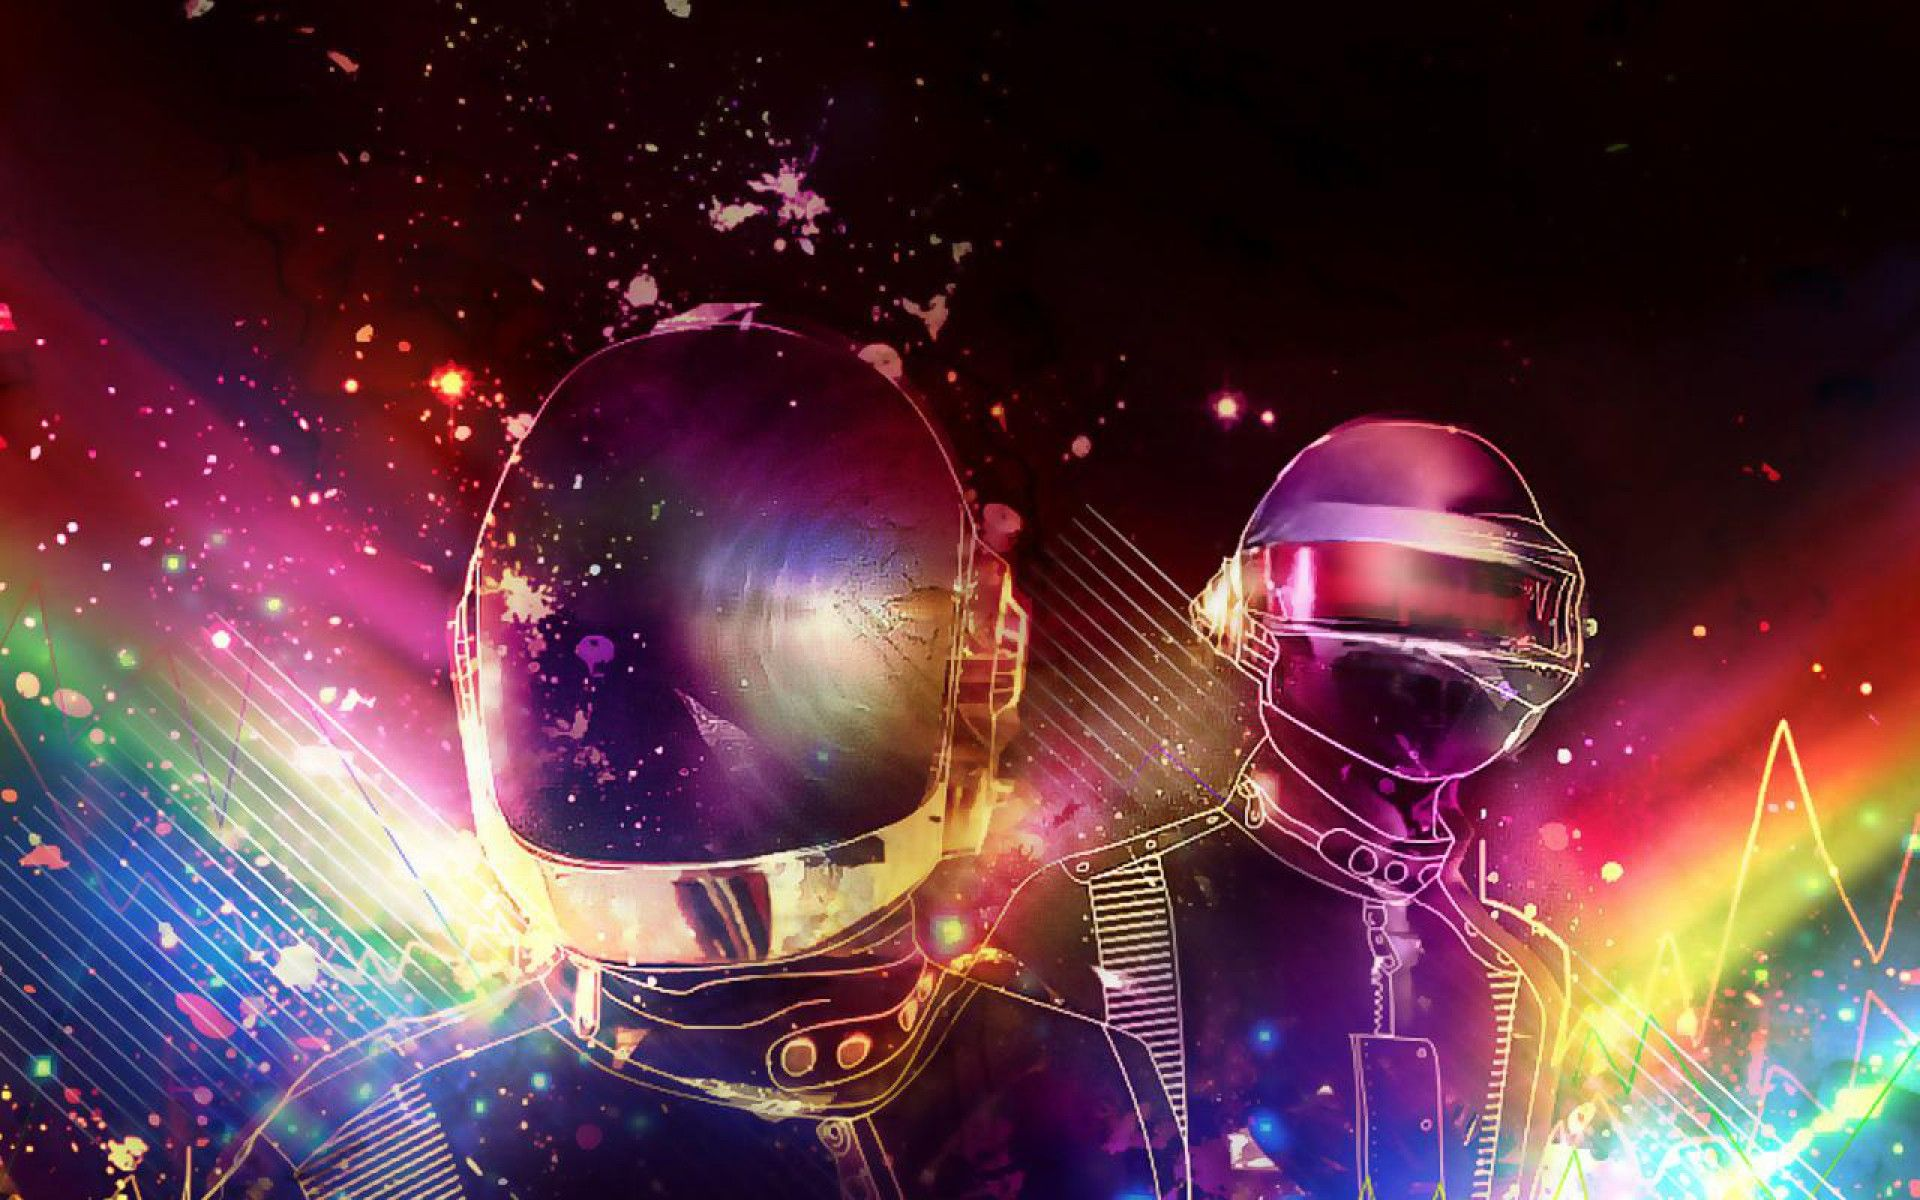 daft punk wallpaper 1080p hd wallpapers | Daft punk ...